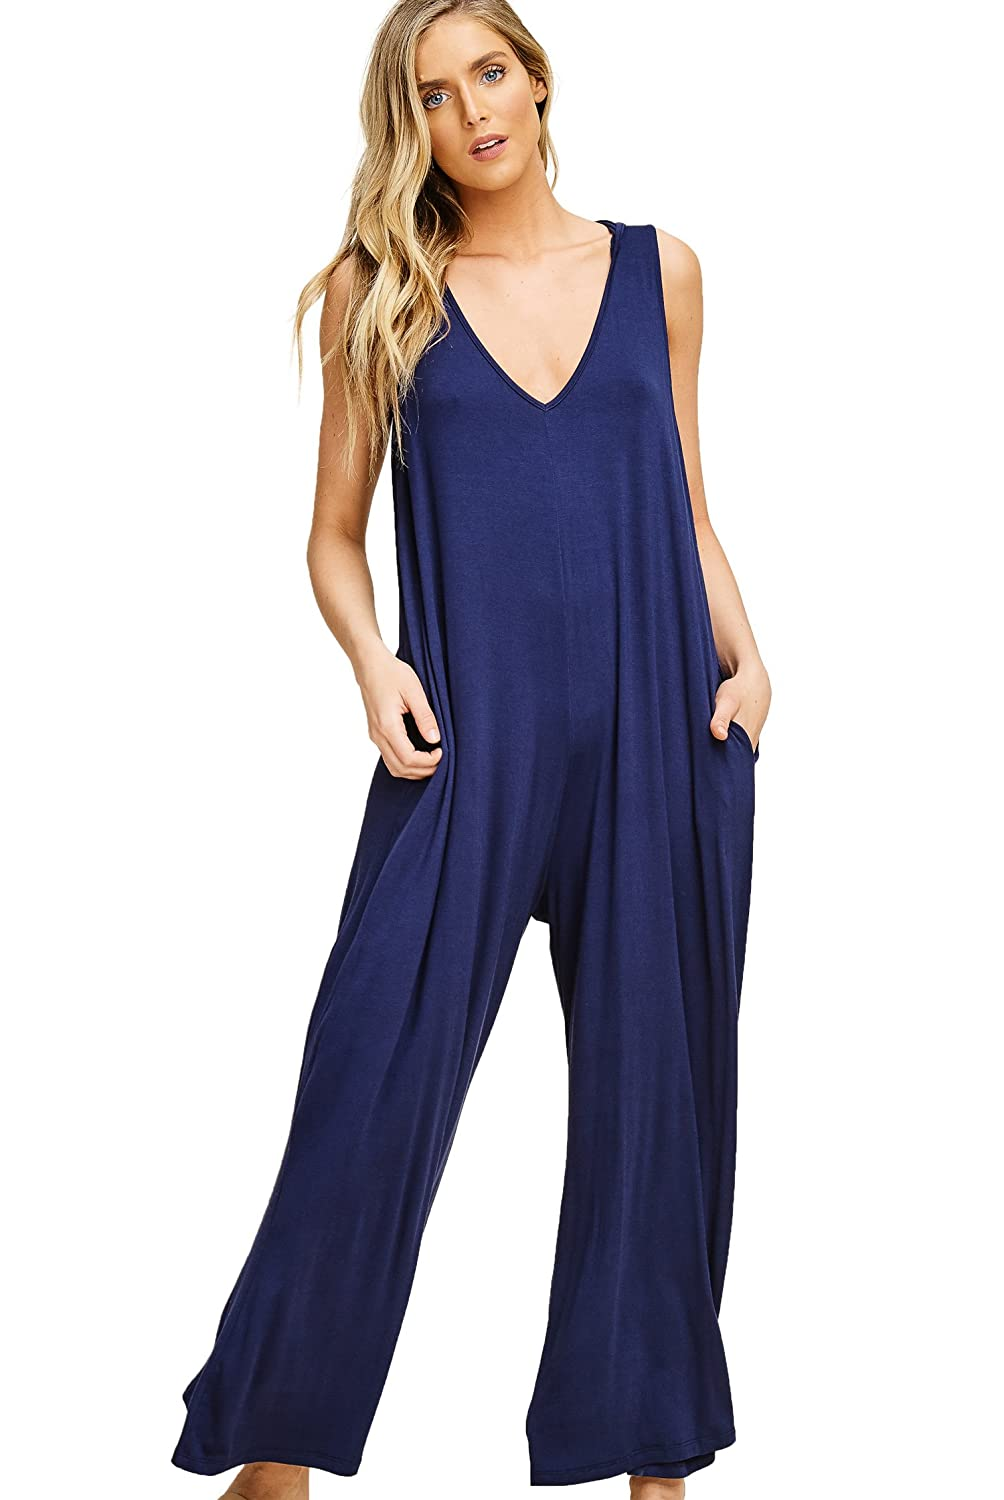 4cea3481e6145 Sleeveless, Wide Straight Leg, Loose Fit Everyday Wear; Comfortable Loung  Wear; Light Weight Fabric, Soft and Cozy for Extra Comfort